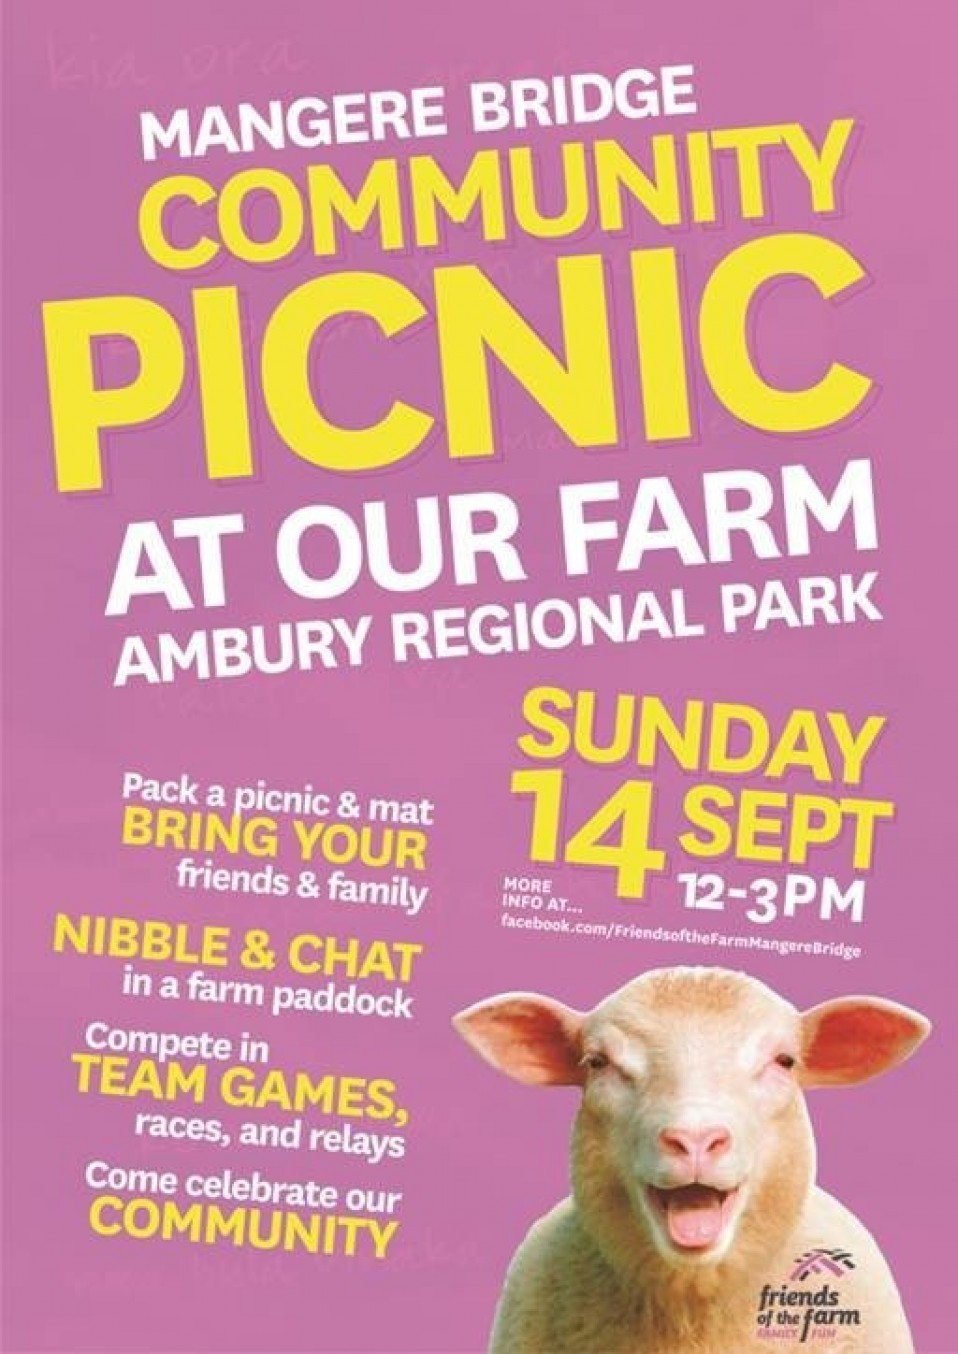 Mangere Bridge Community Picnic